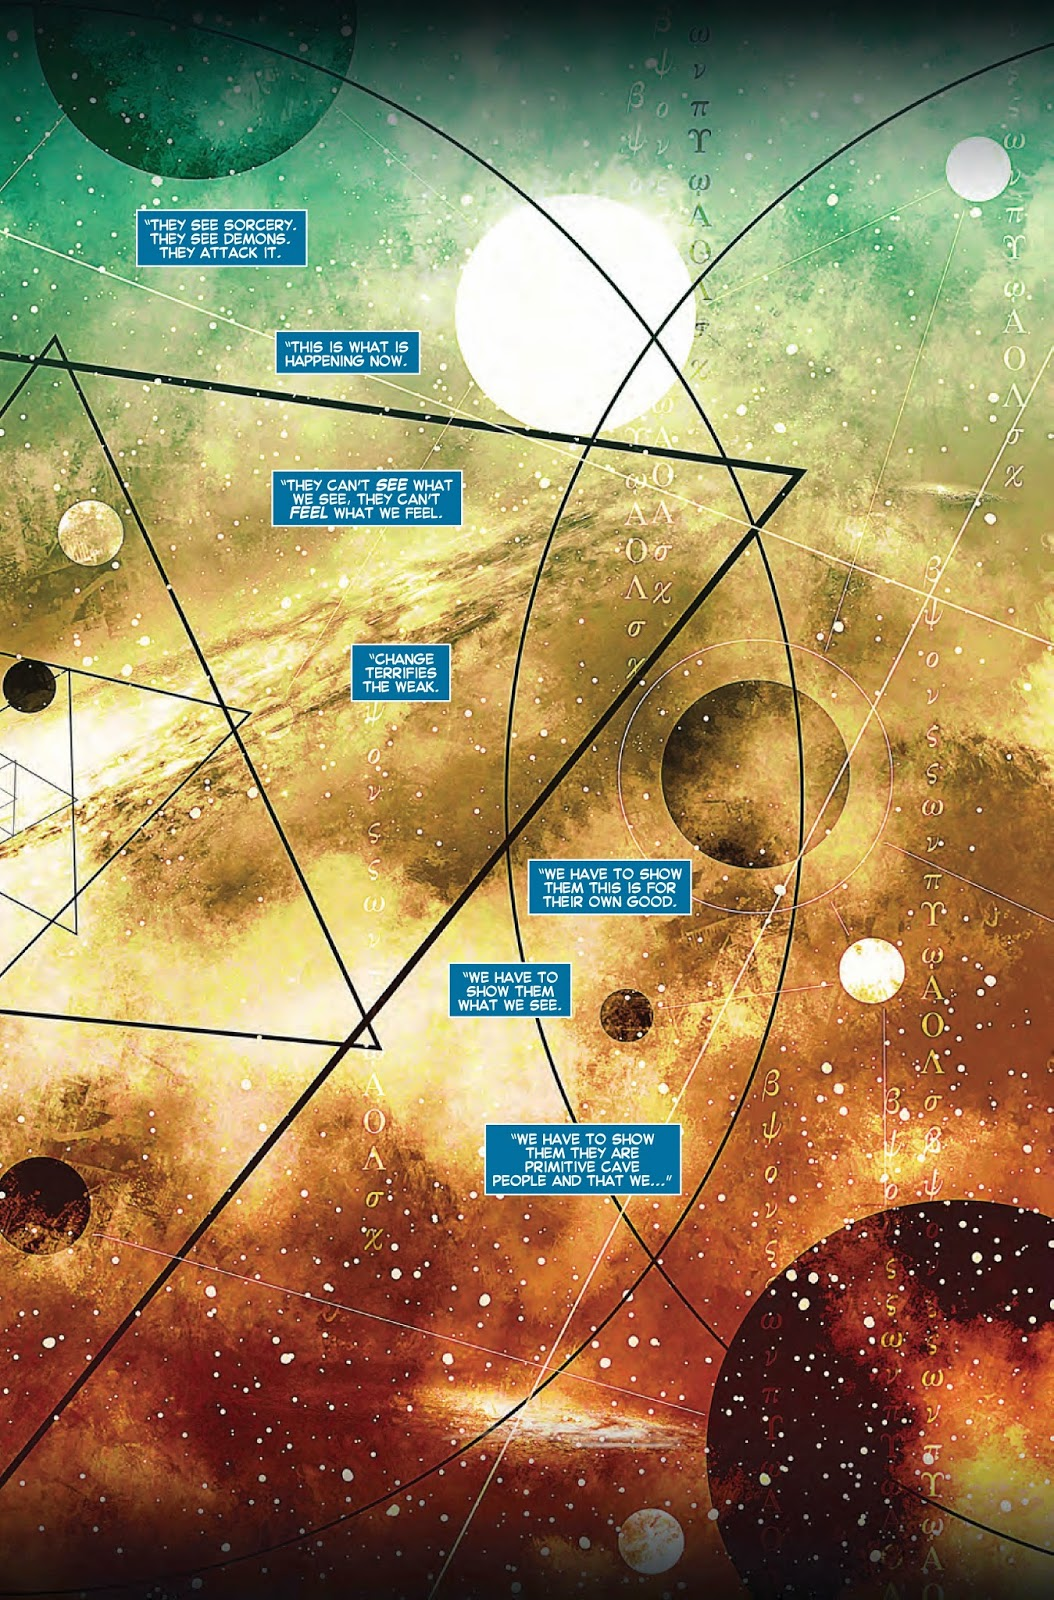 Marvel Space 616 Universe